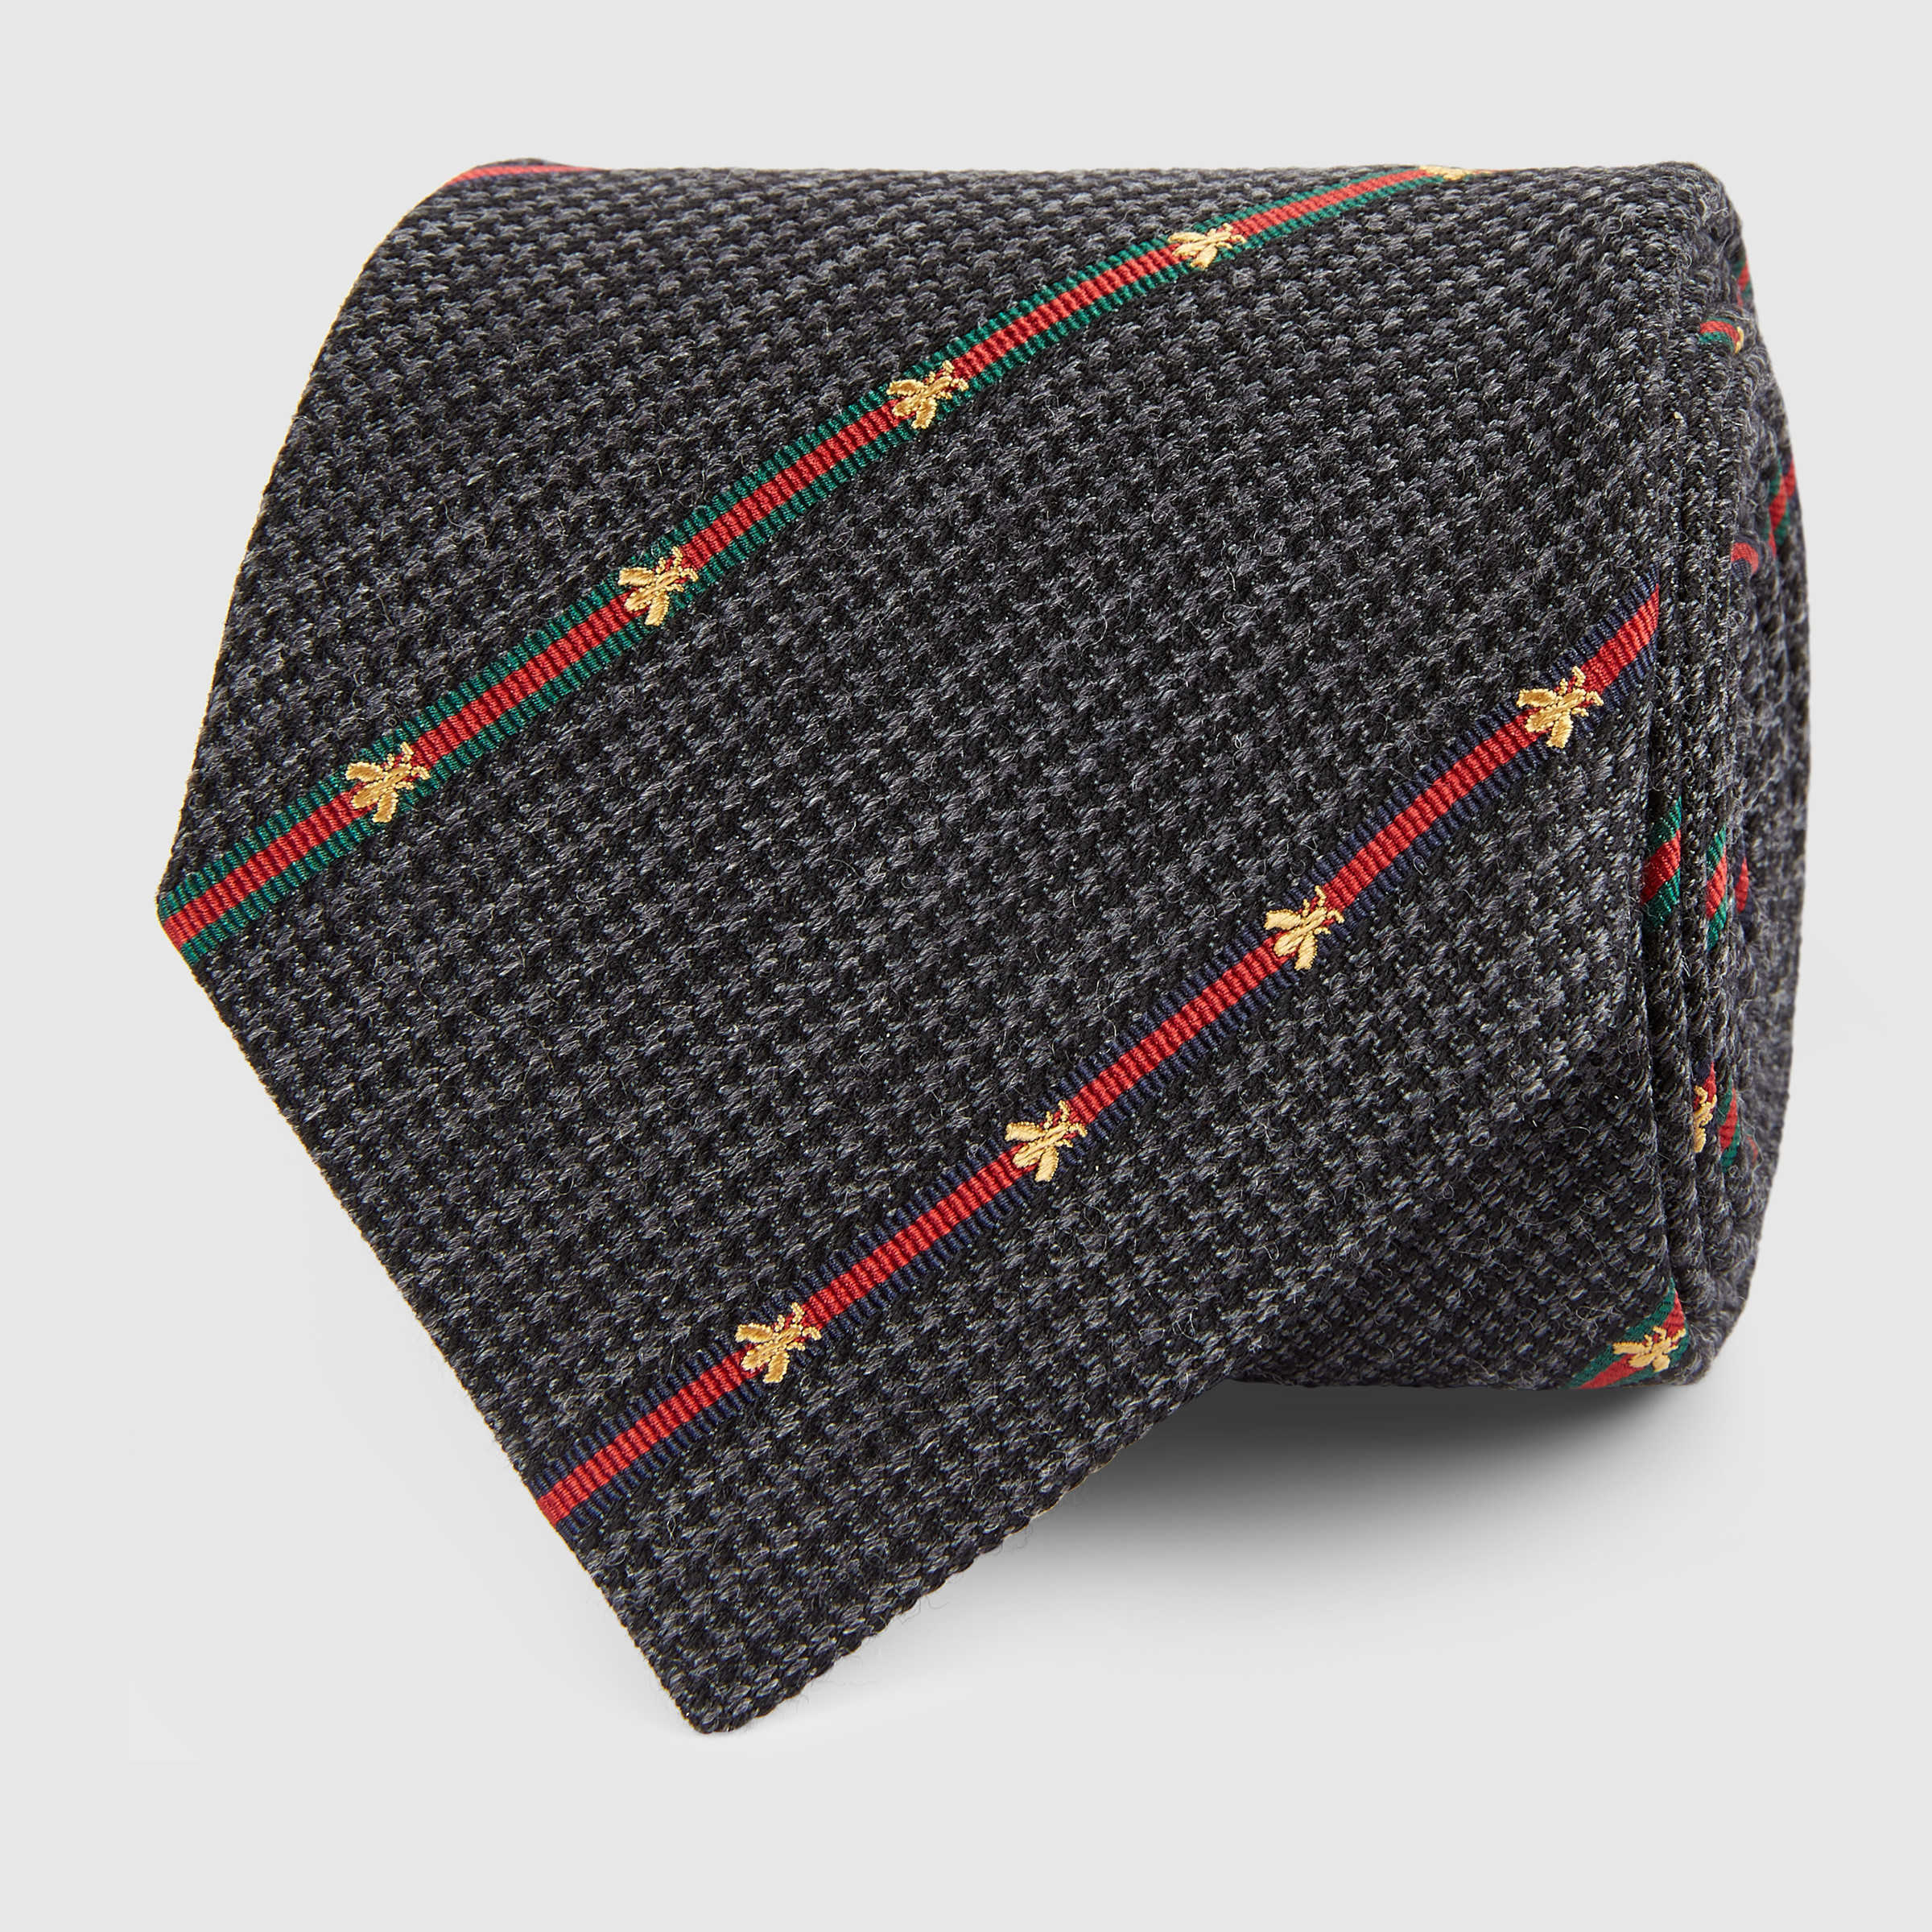 【グッチ】Silk Wool Tie With Bee Web Stripe ネクタイ